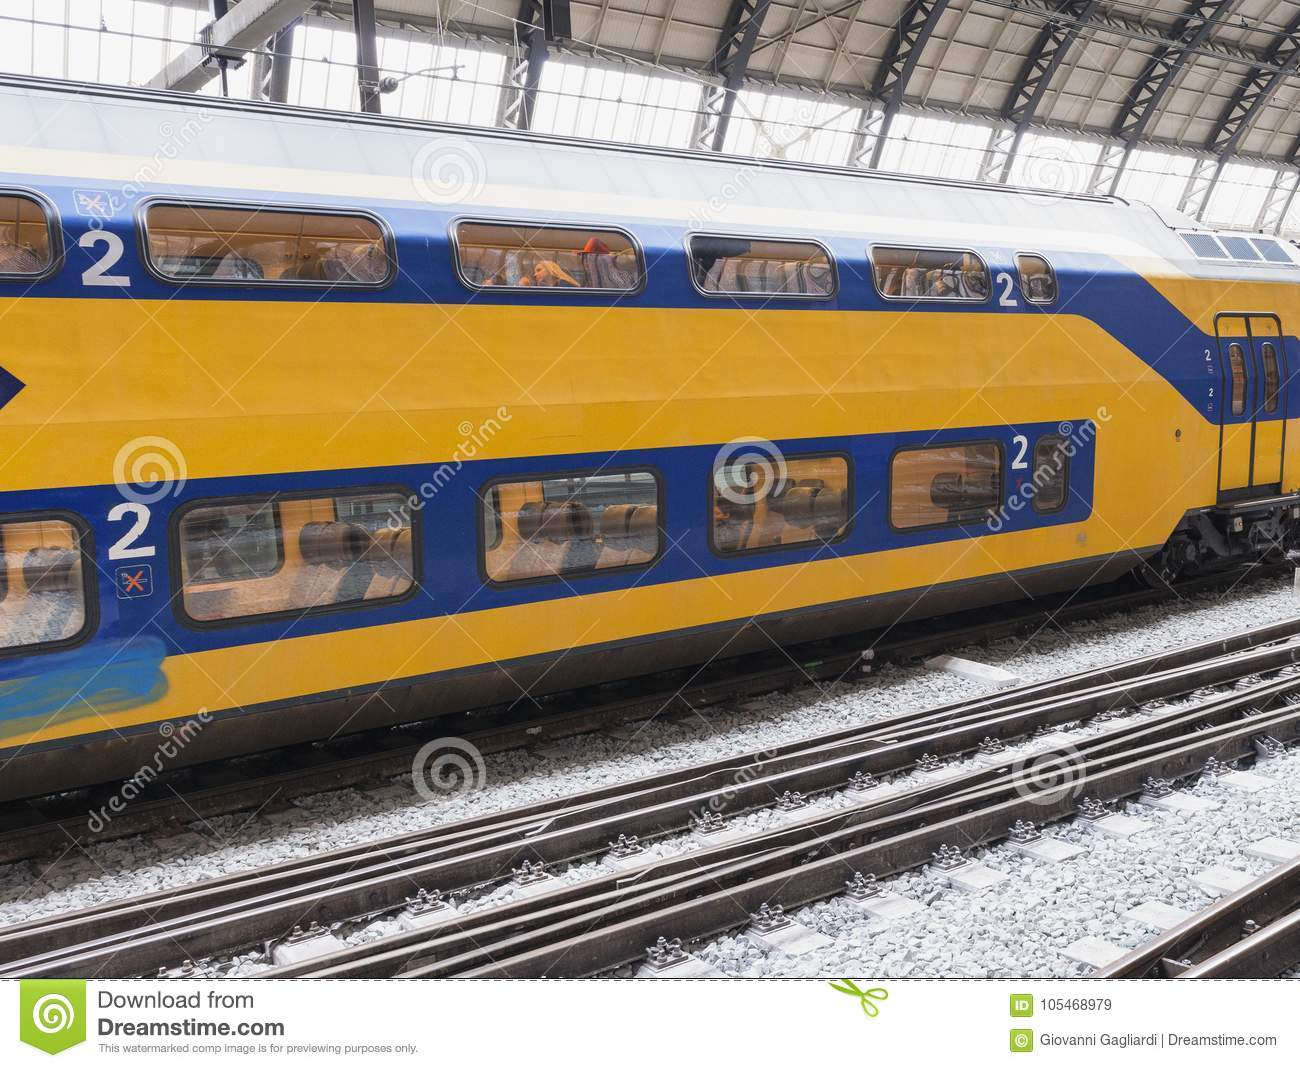 AMSTERDAM - MARCH 2013: Train in main station. Amsterdam Centraal is a famou tourist destination